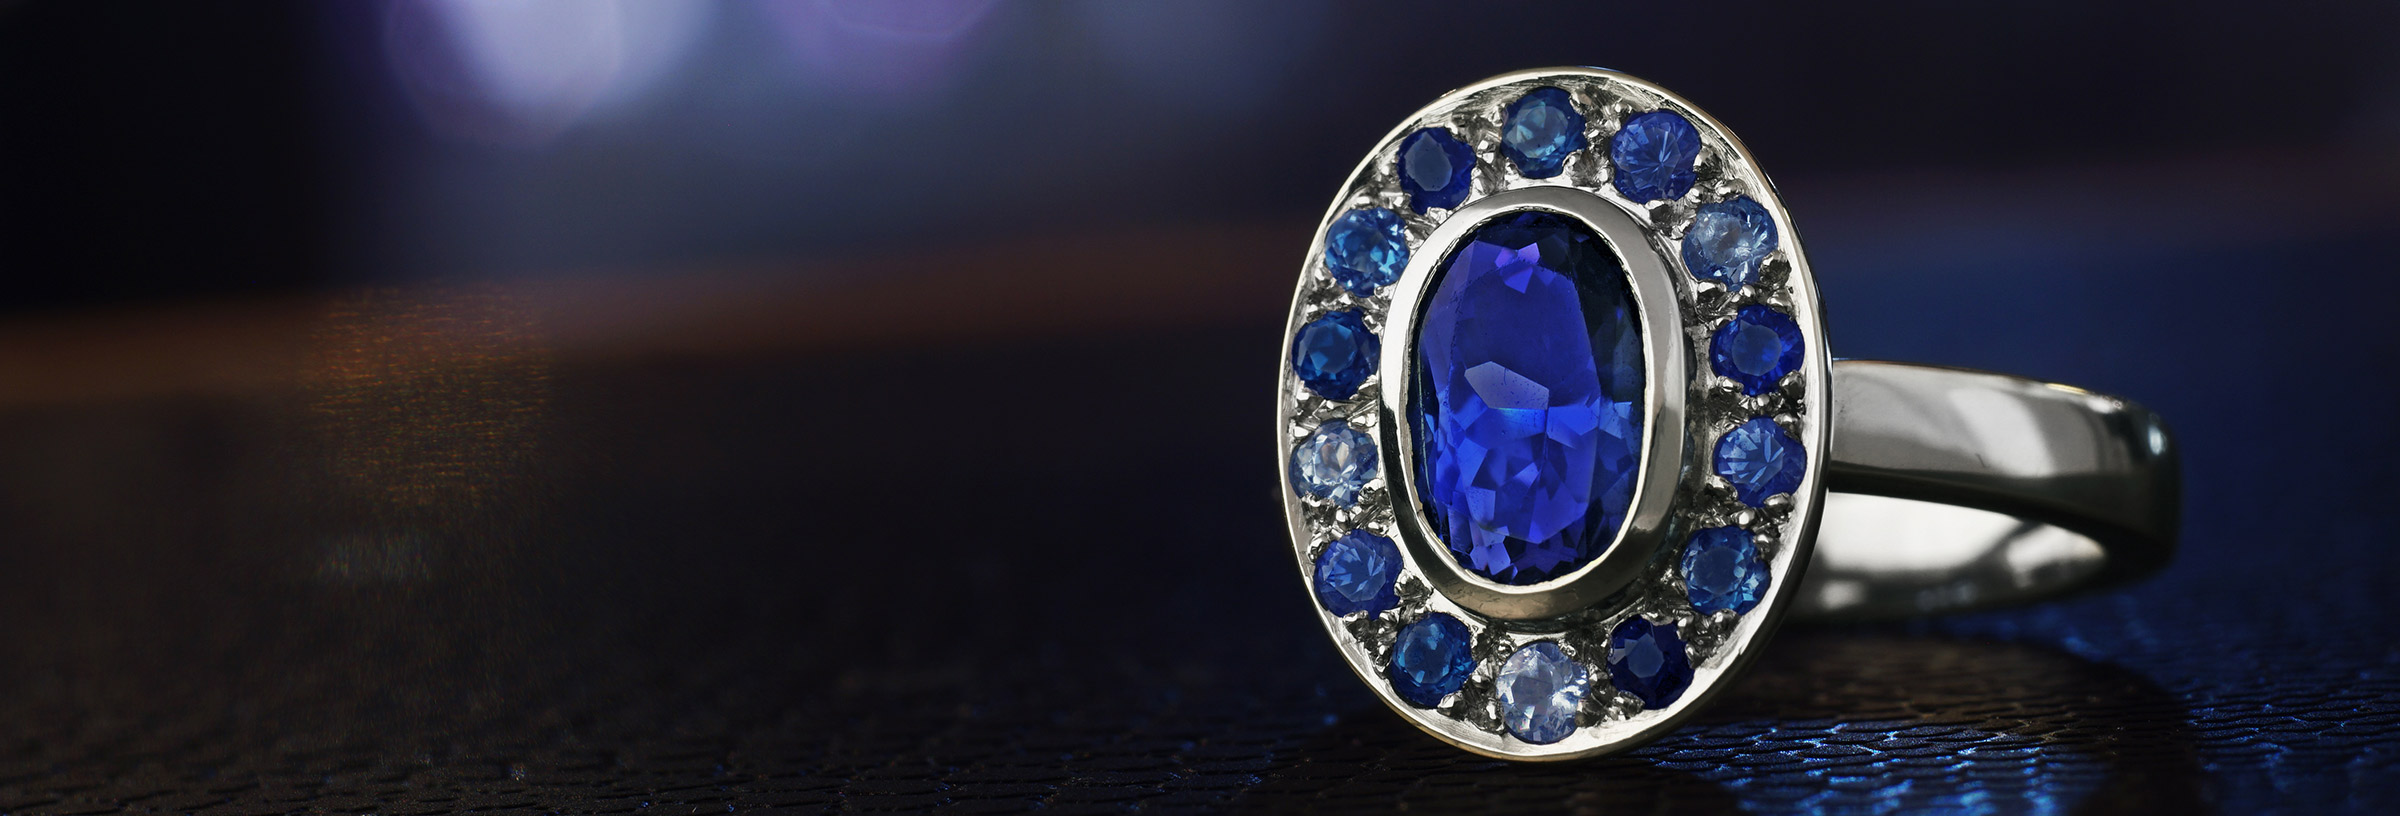 under-the-sea-inspired-platinum-engagement-ring-with-185ct-oval-cut-tanzanite